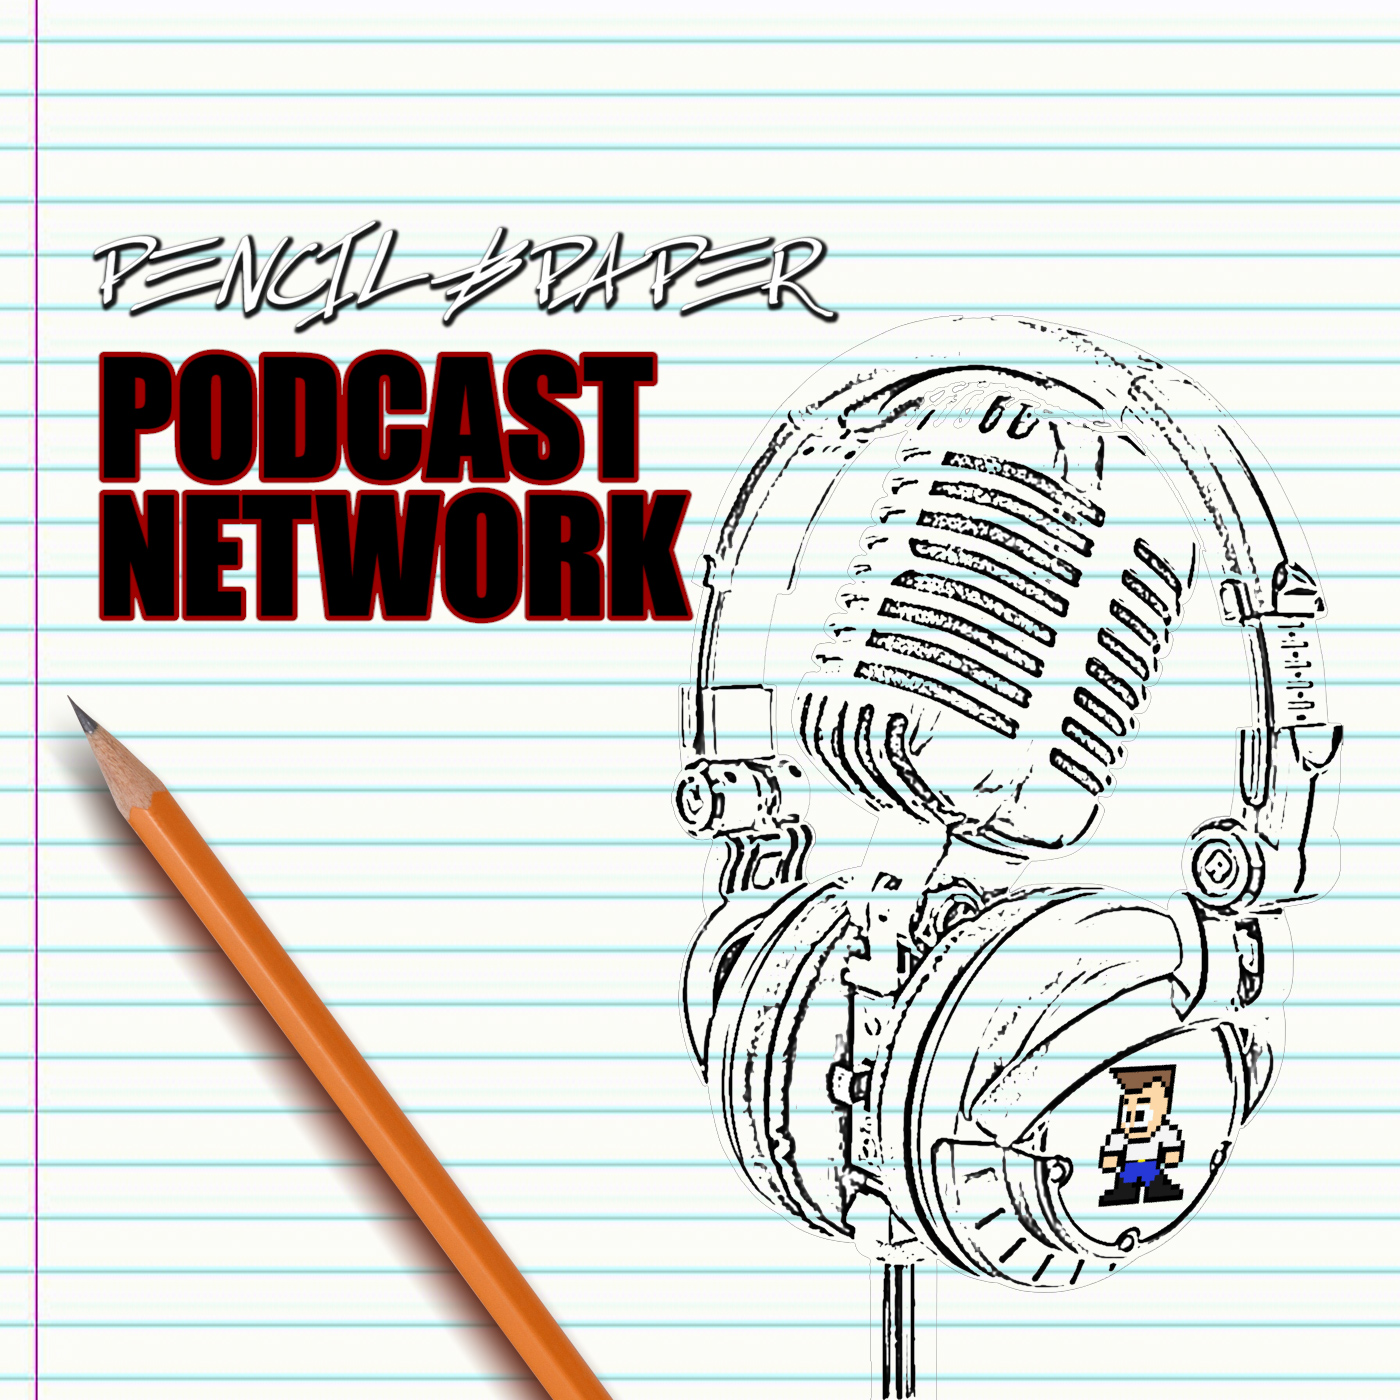 Pencil & Paper Podcast Network